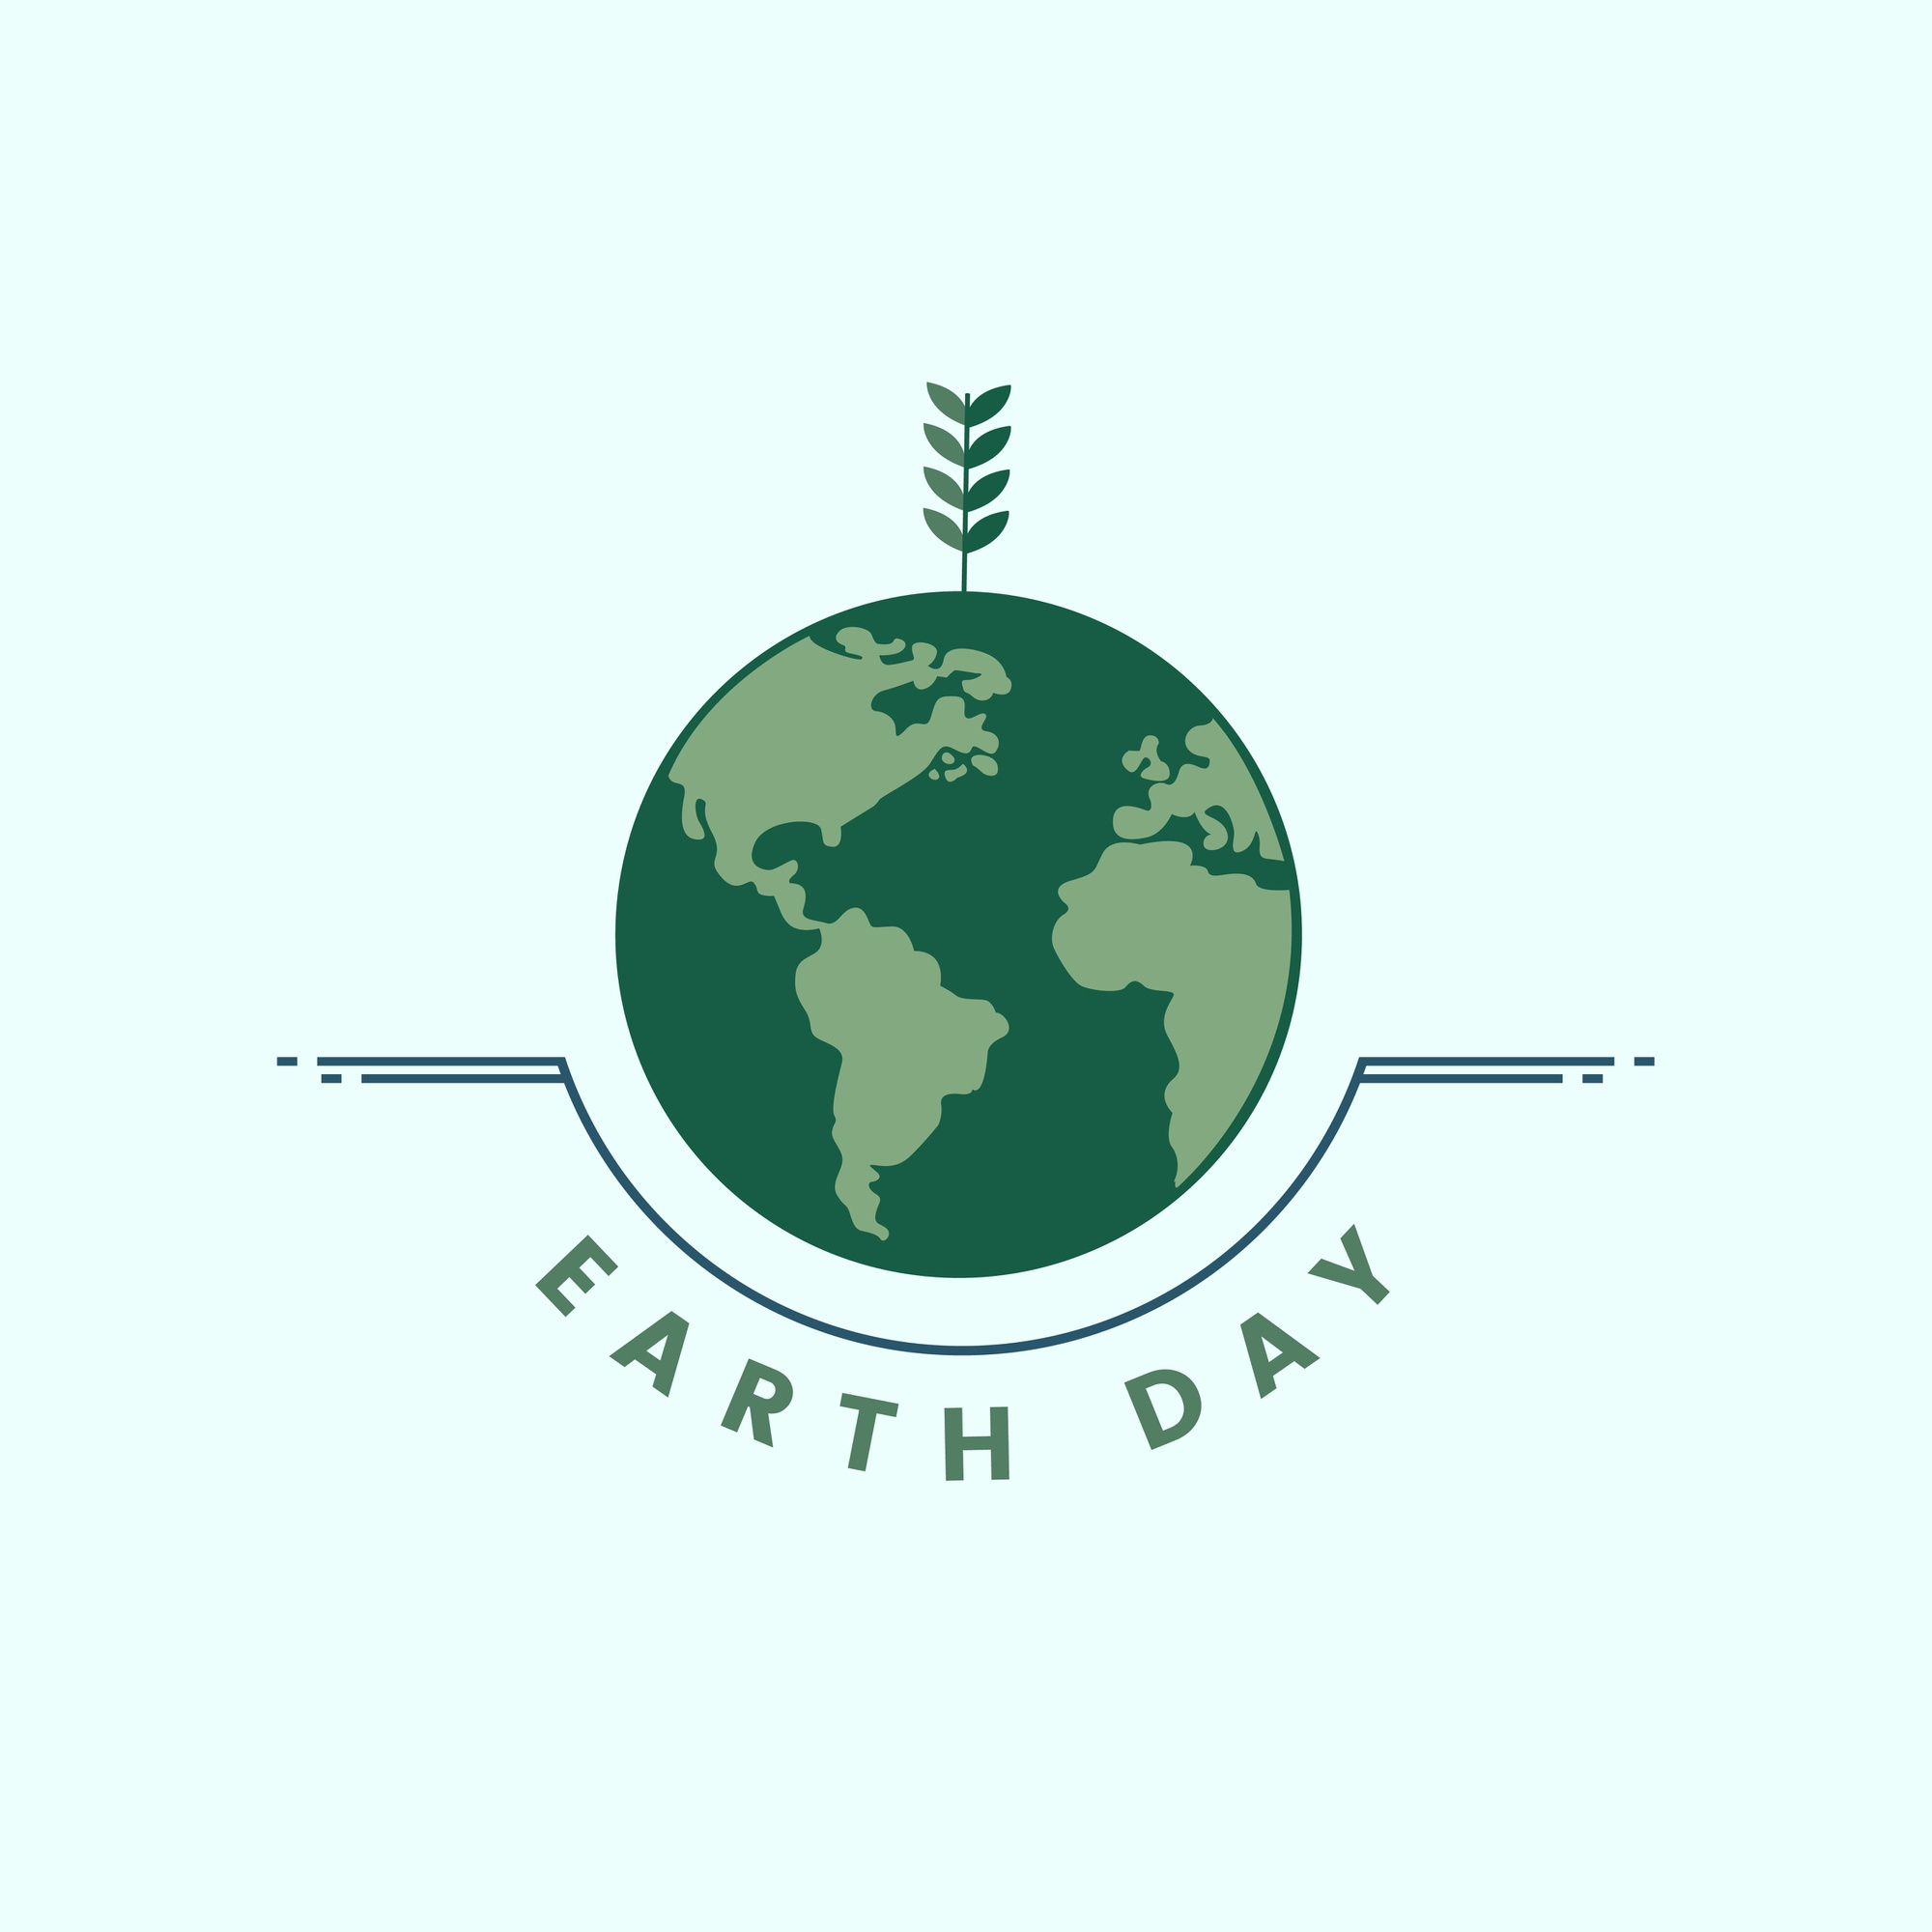 Earth day and environment icon